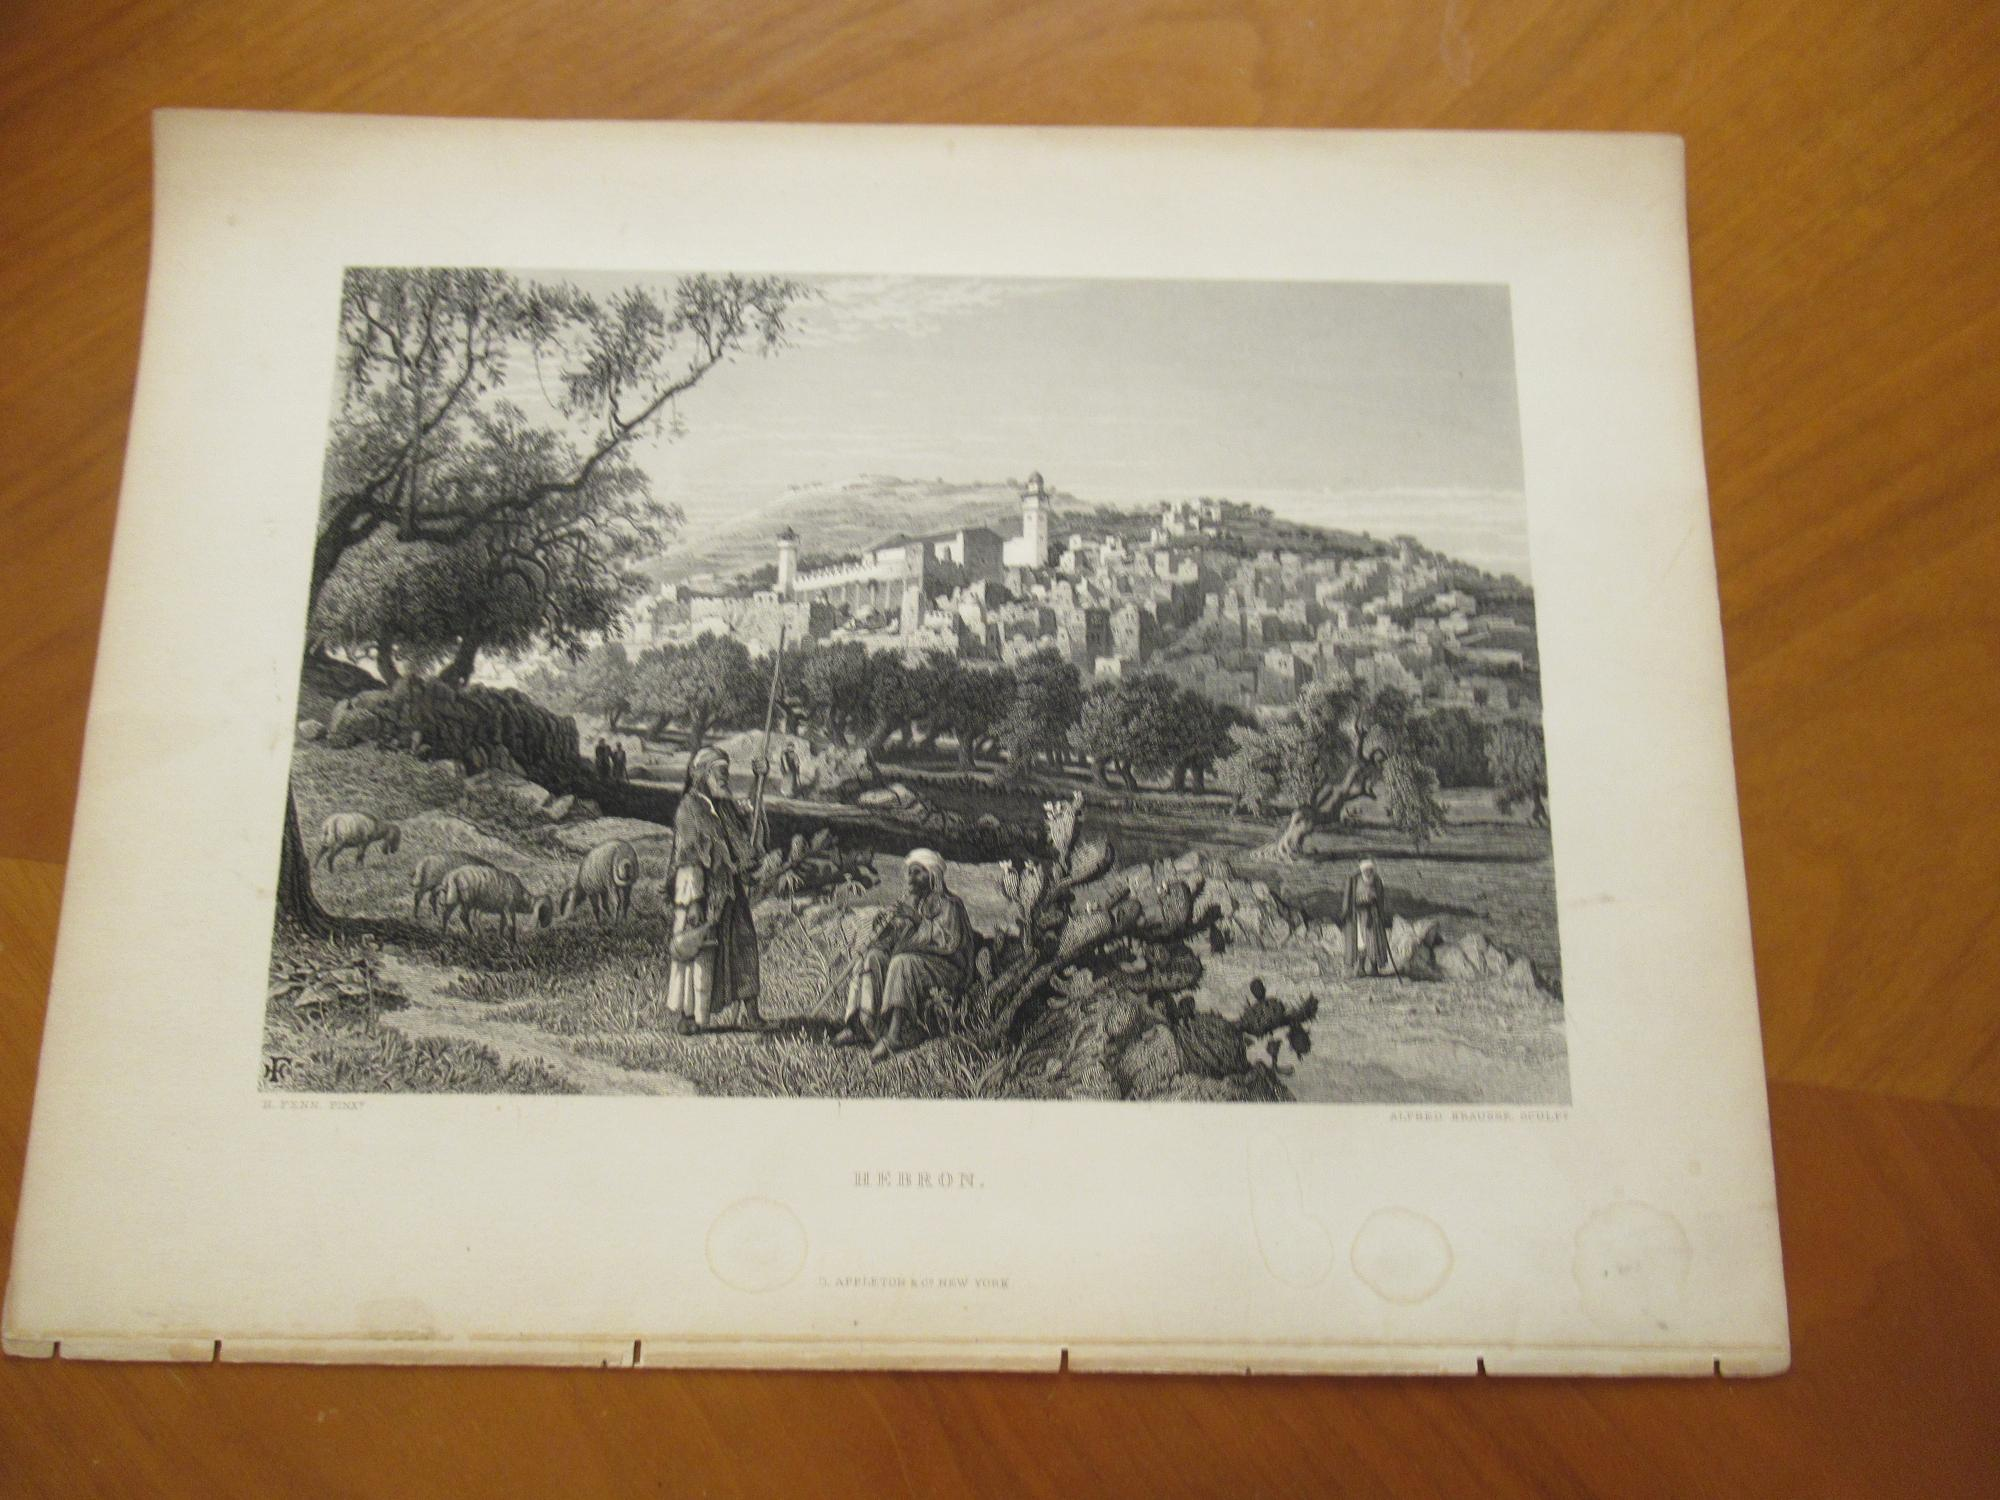 Hebron [Original Engraving Of A View Of The City] Engraving By Alfred Krausse After A Painting By H. Fenn Very Good